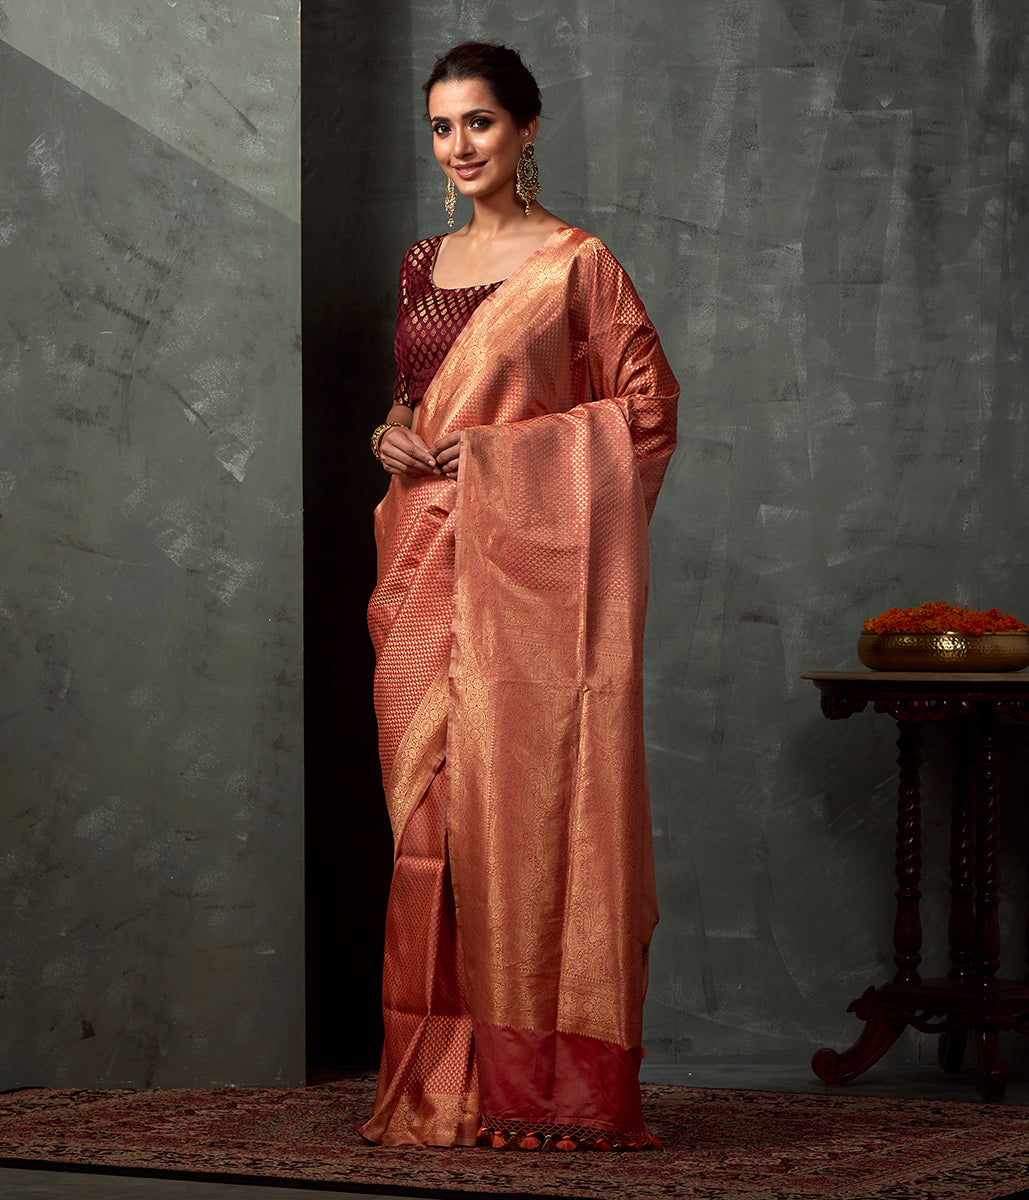 Handwoven Peach Katan Silk saree with Small Paislye Motifs Woven in Zari